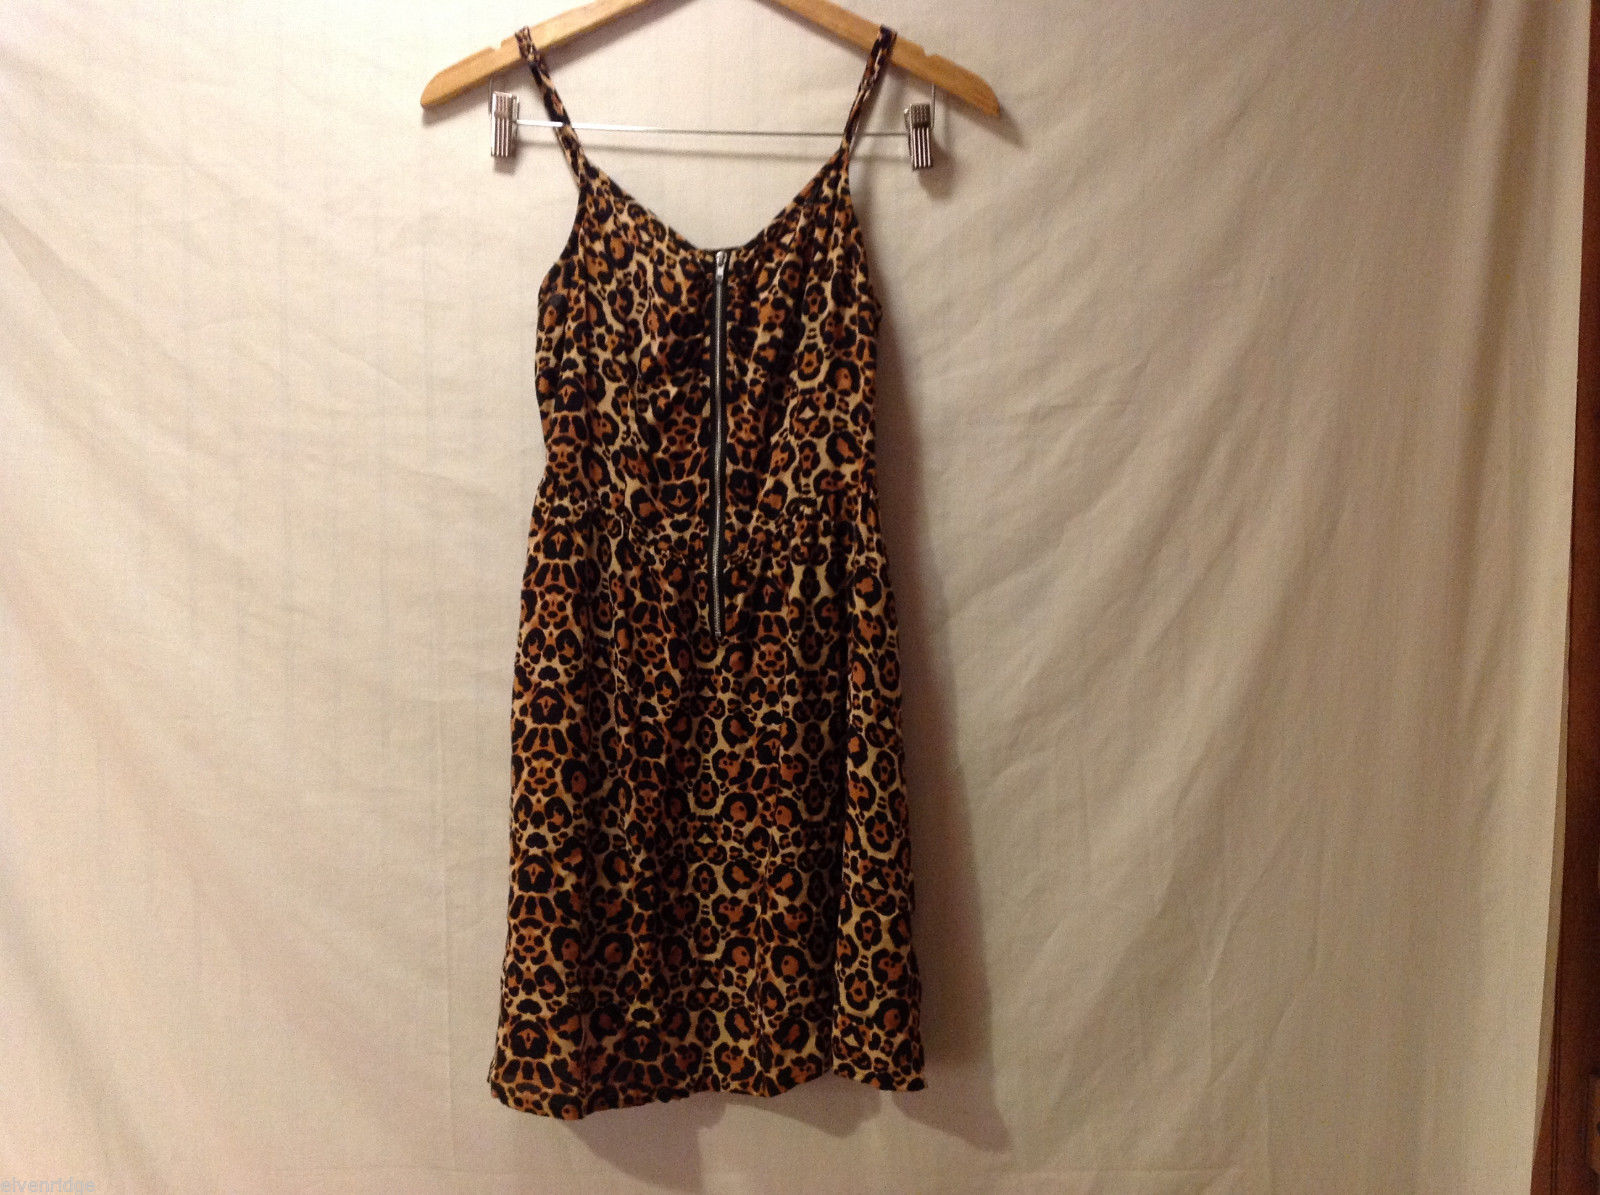 DIVIDED by H&M Cheetah Printed Spaghetti Strap Dress Front Zipper, size 6